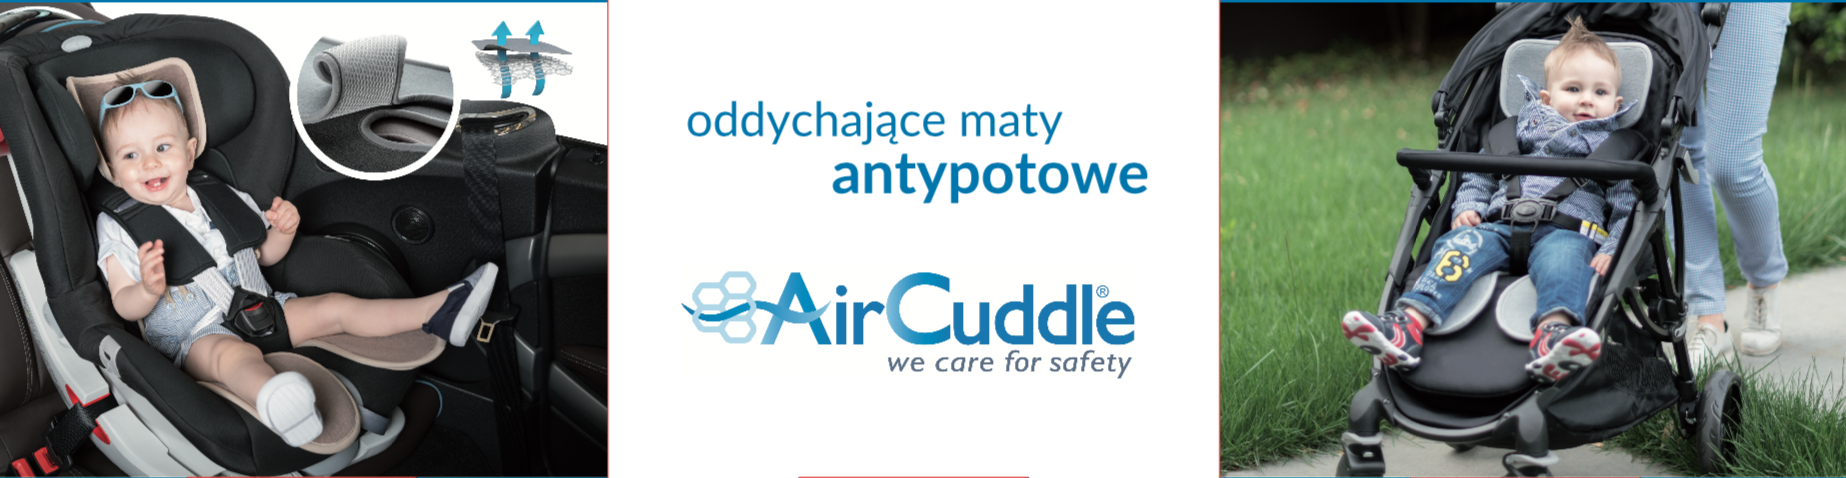 Maty antypotowe AirCuddle